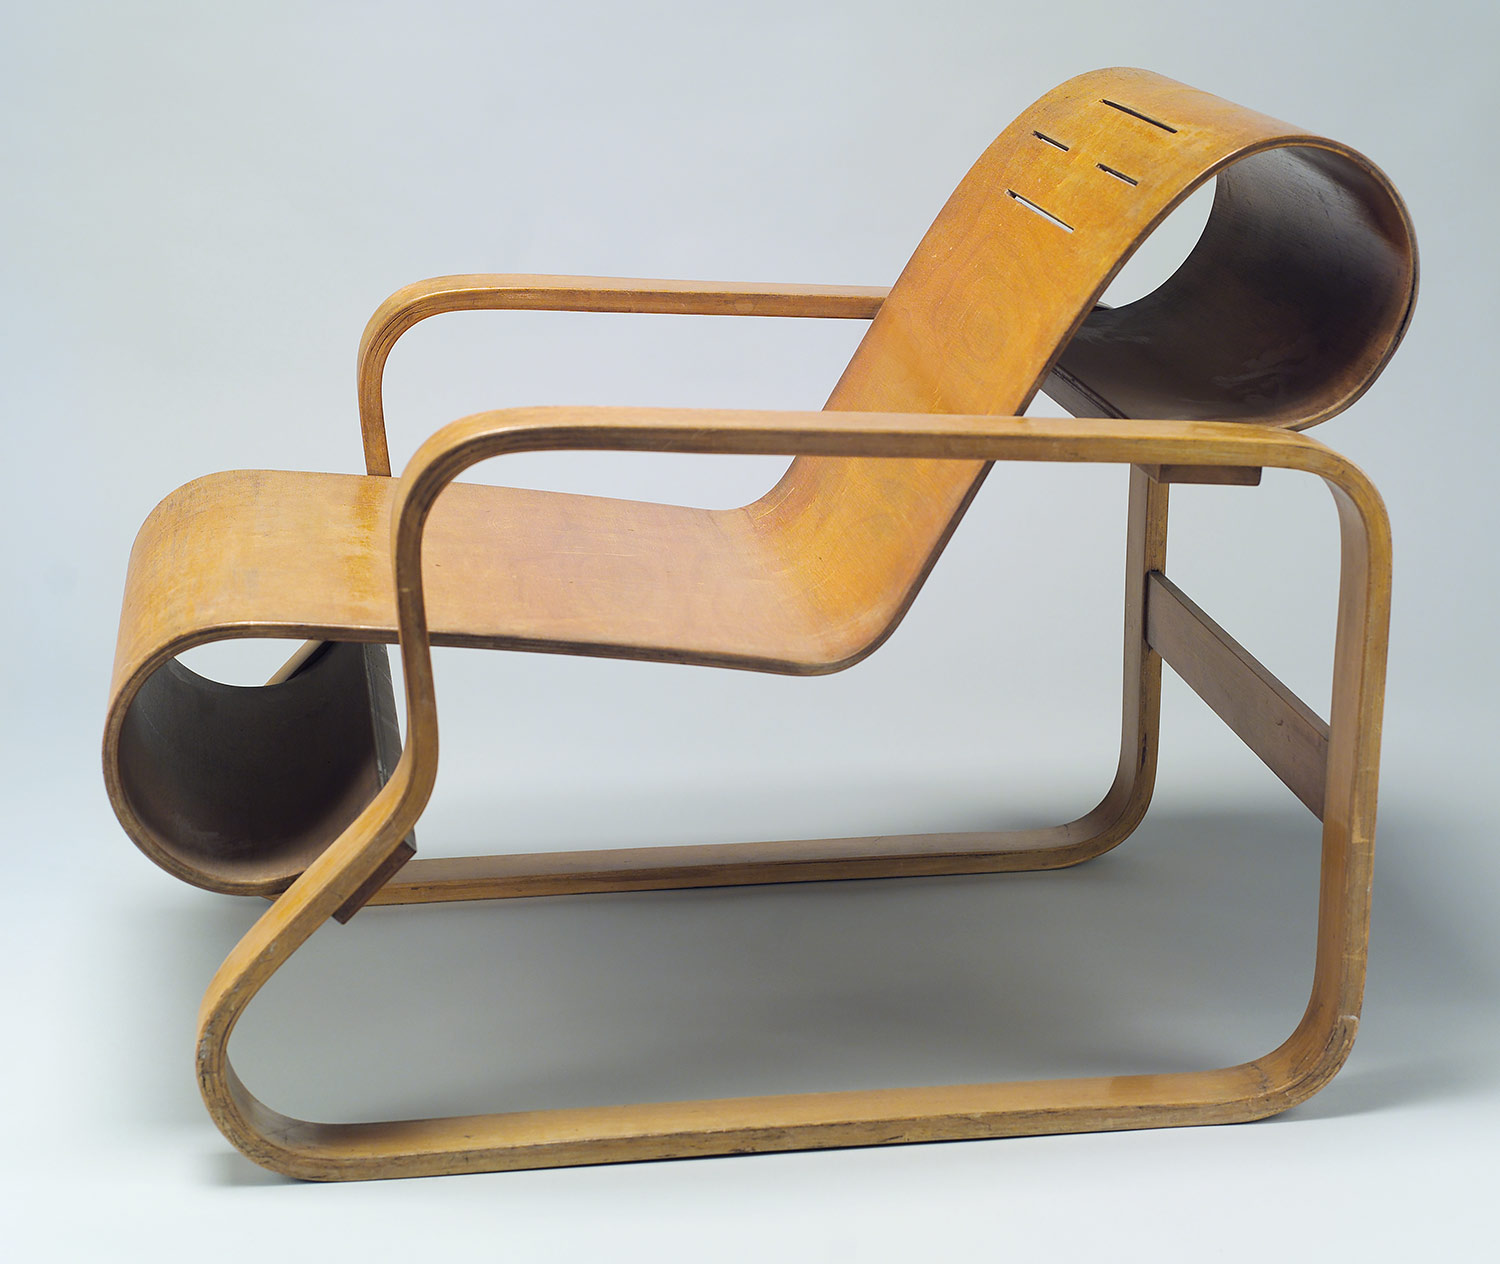 Alvar Aalto: Model No. 41 lounge chair